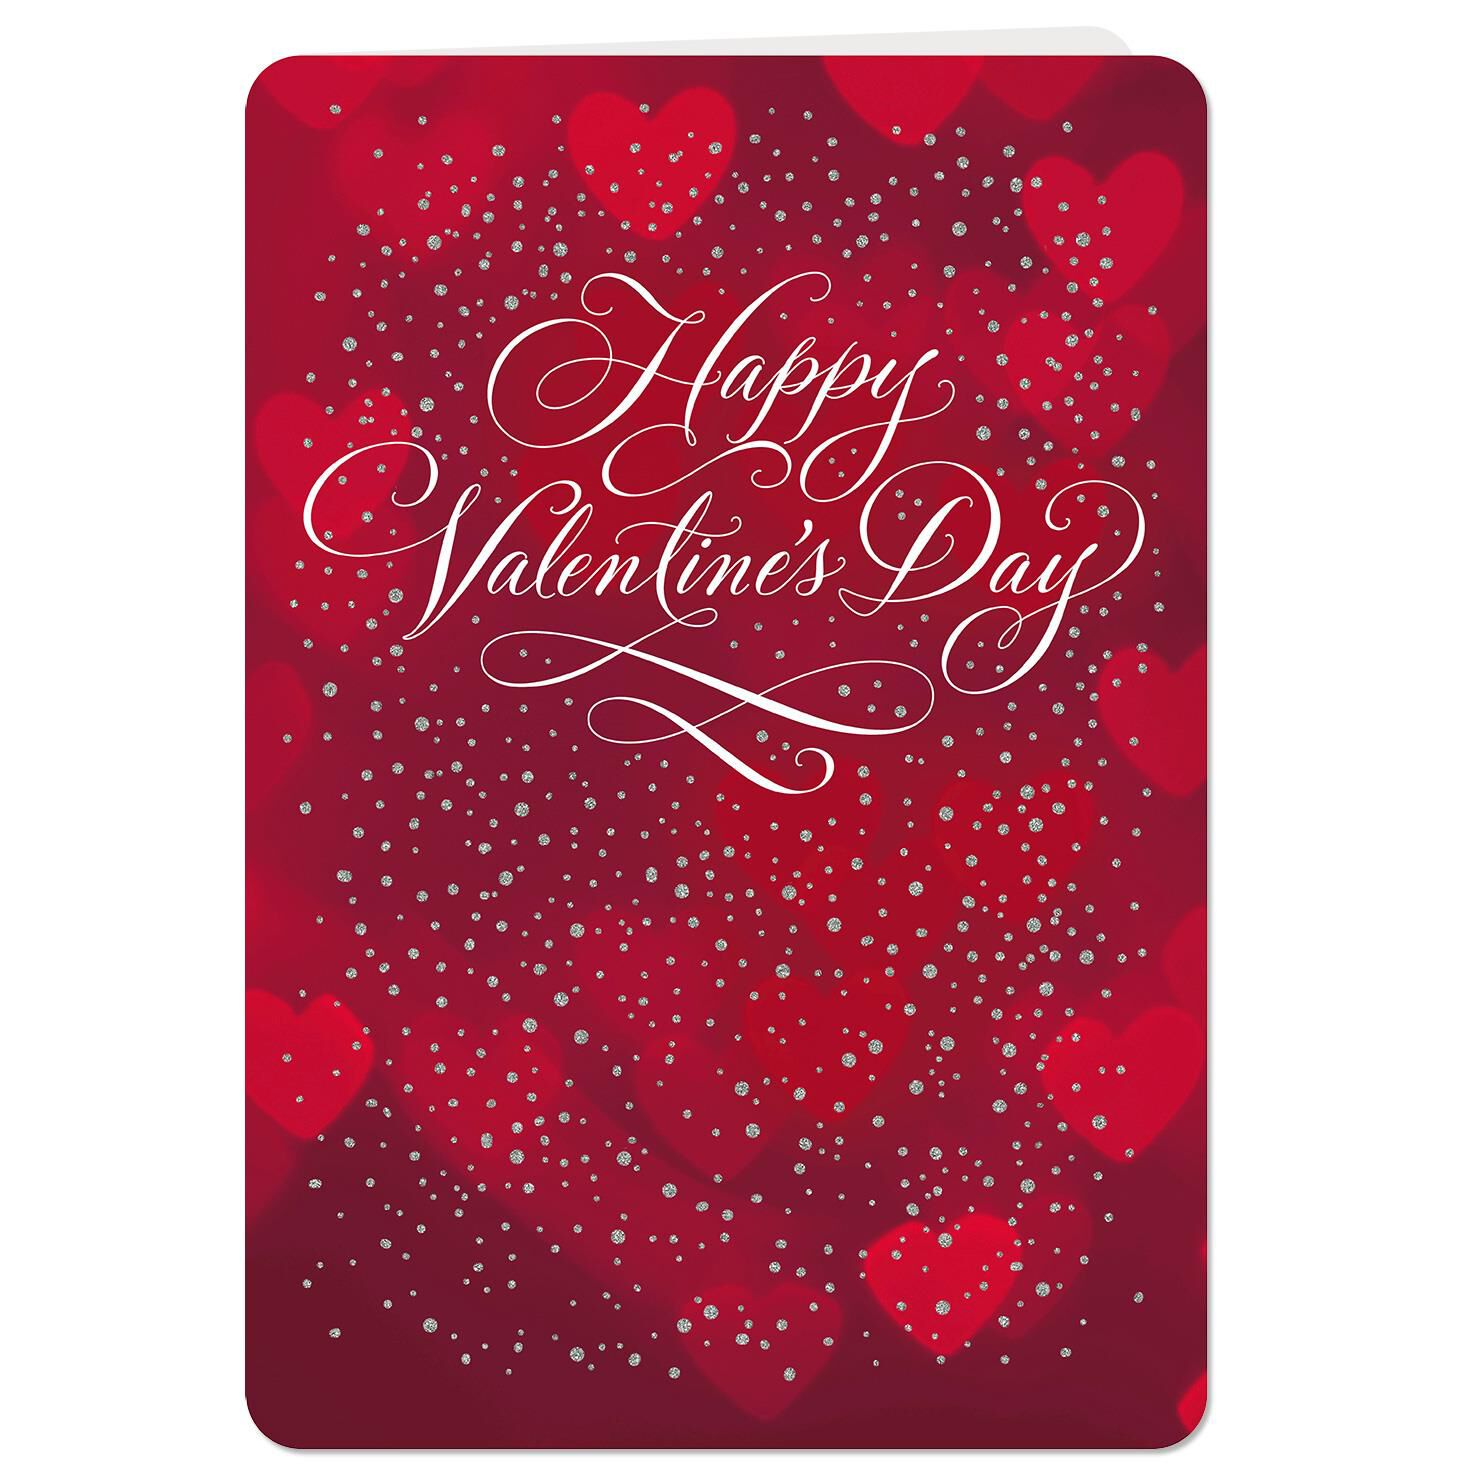 With All My Heart Jumbo Valentines Day Card 1925 Greeting